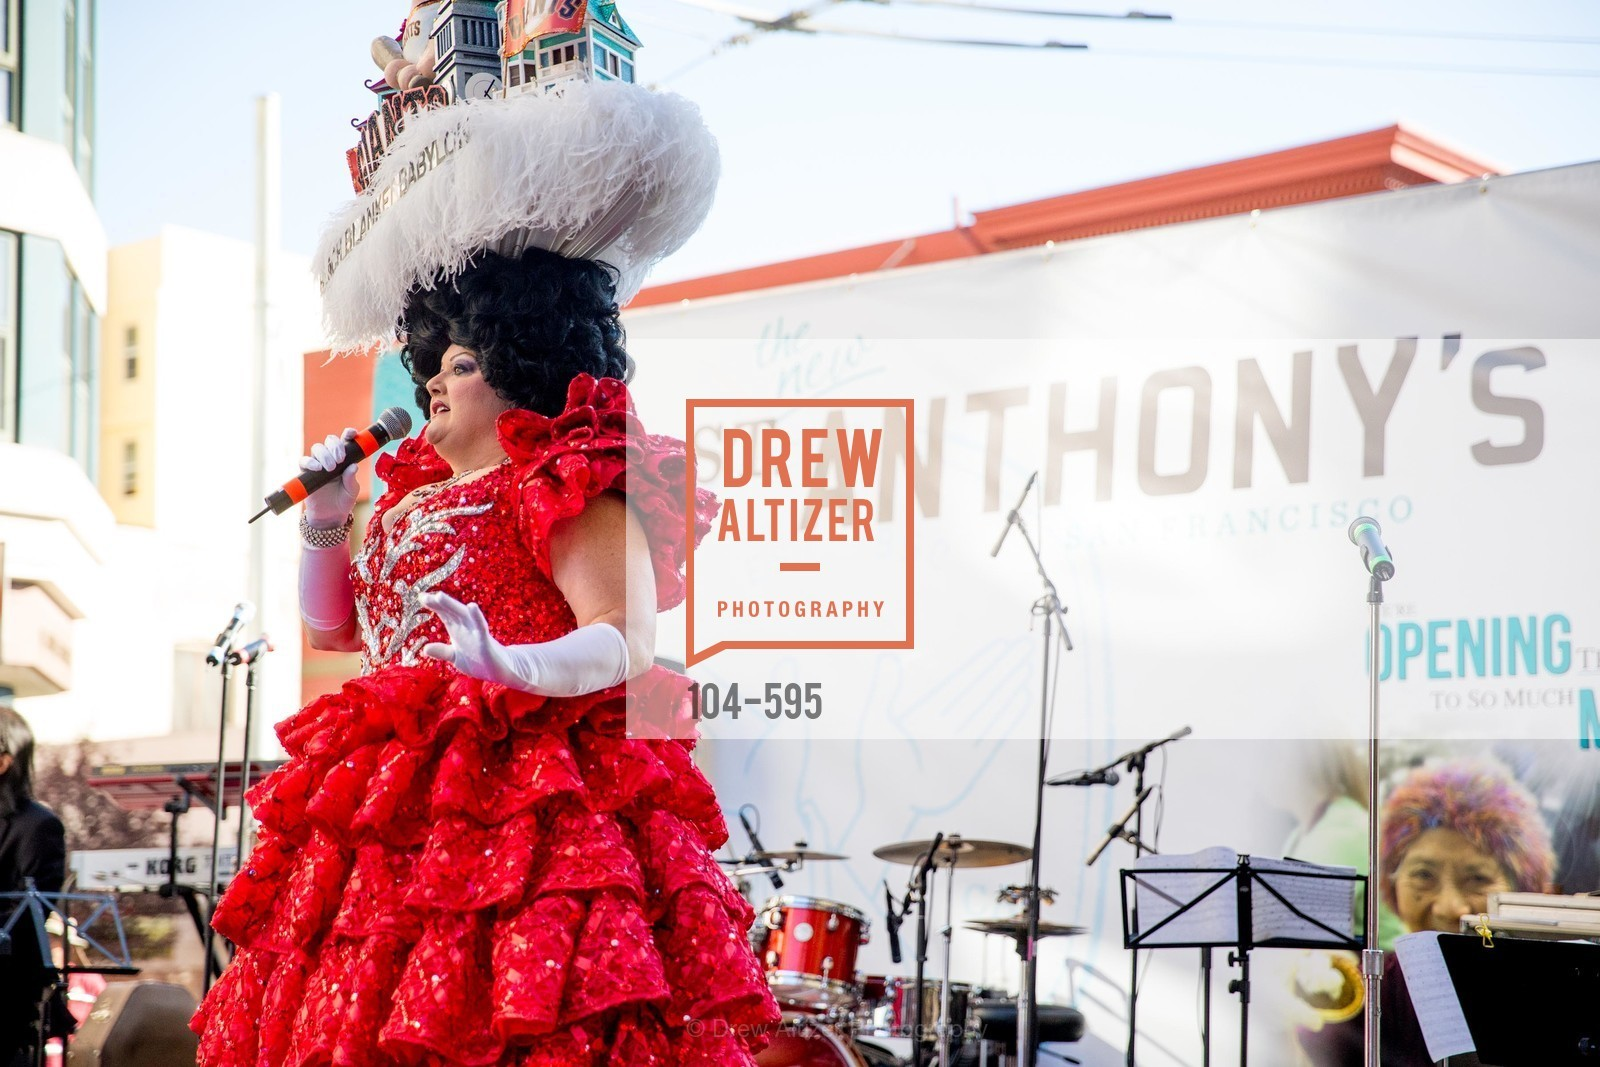 Beach Blanket Babylon, ST. ANTHONY'S Dining Room Ribbon Cutting Ceremony, US, October 5th, 2014,Drew Altizer, Drew Altizer Photography, full-service agency, private events, San Francisco photographer, photographer california